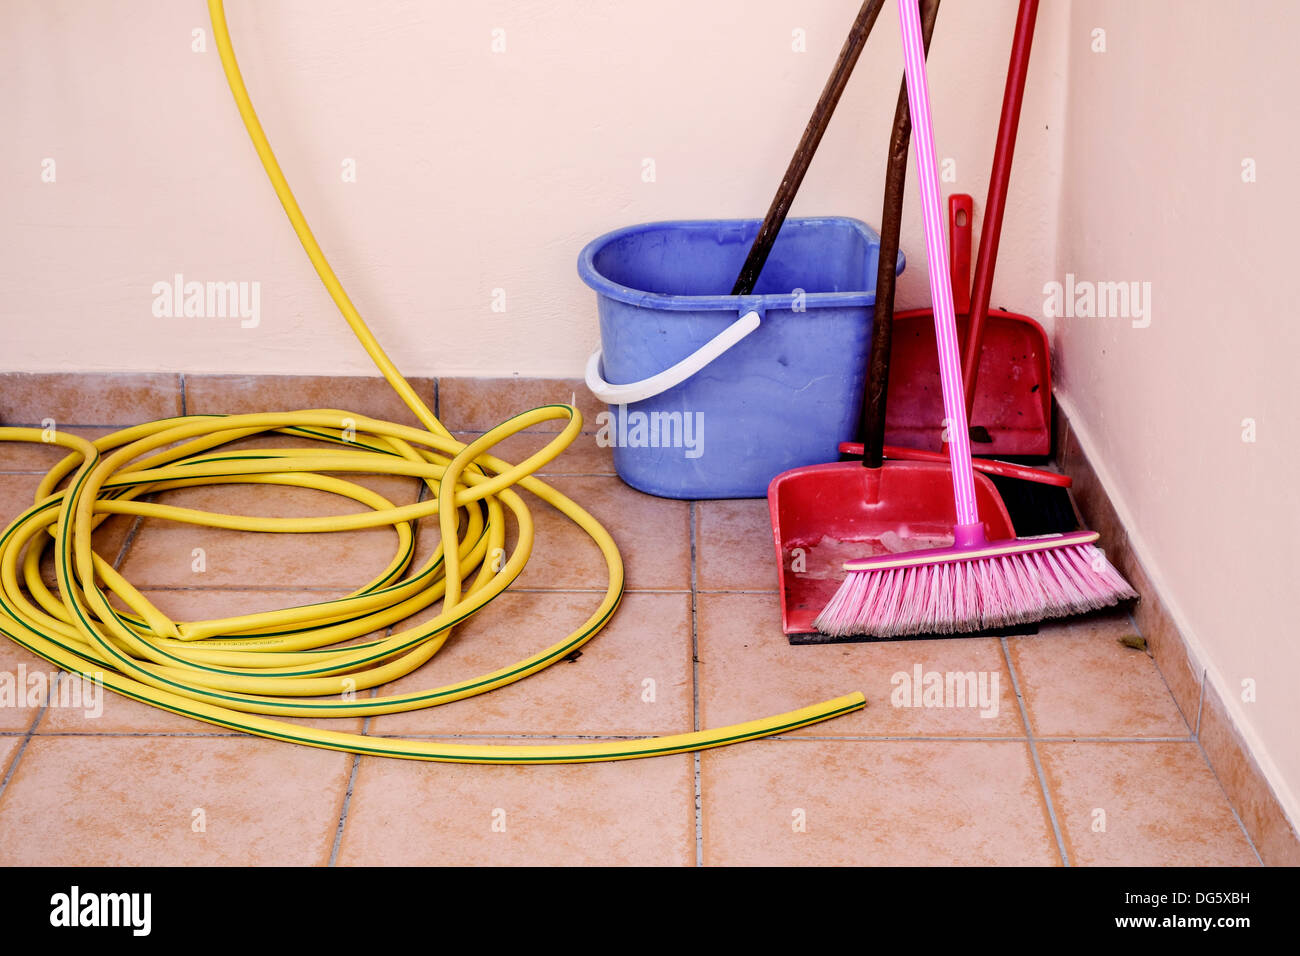 Household Cleaning Utensils and Hosepipe. - Stock Image